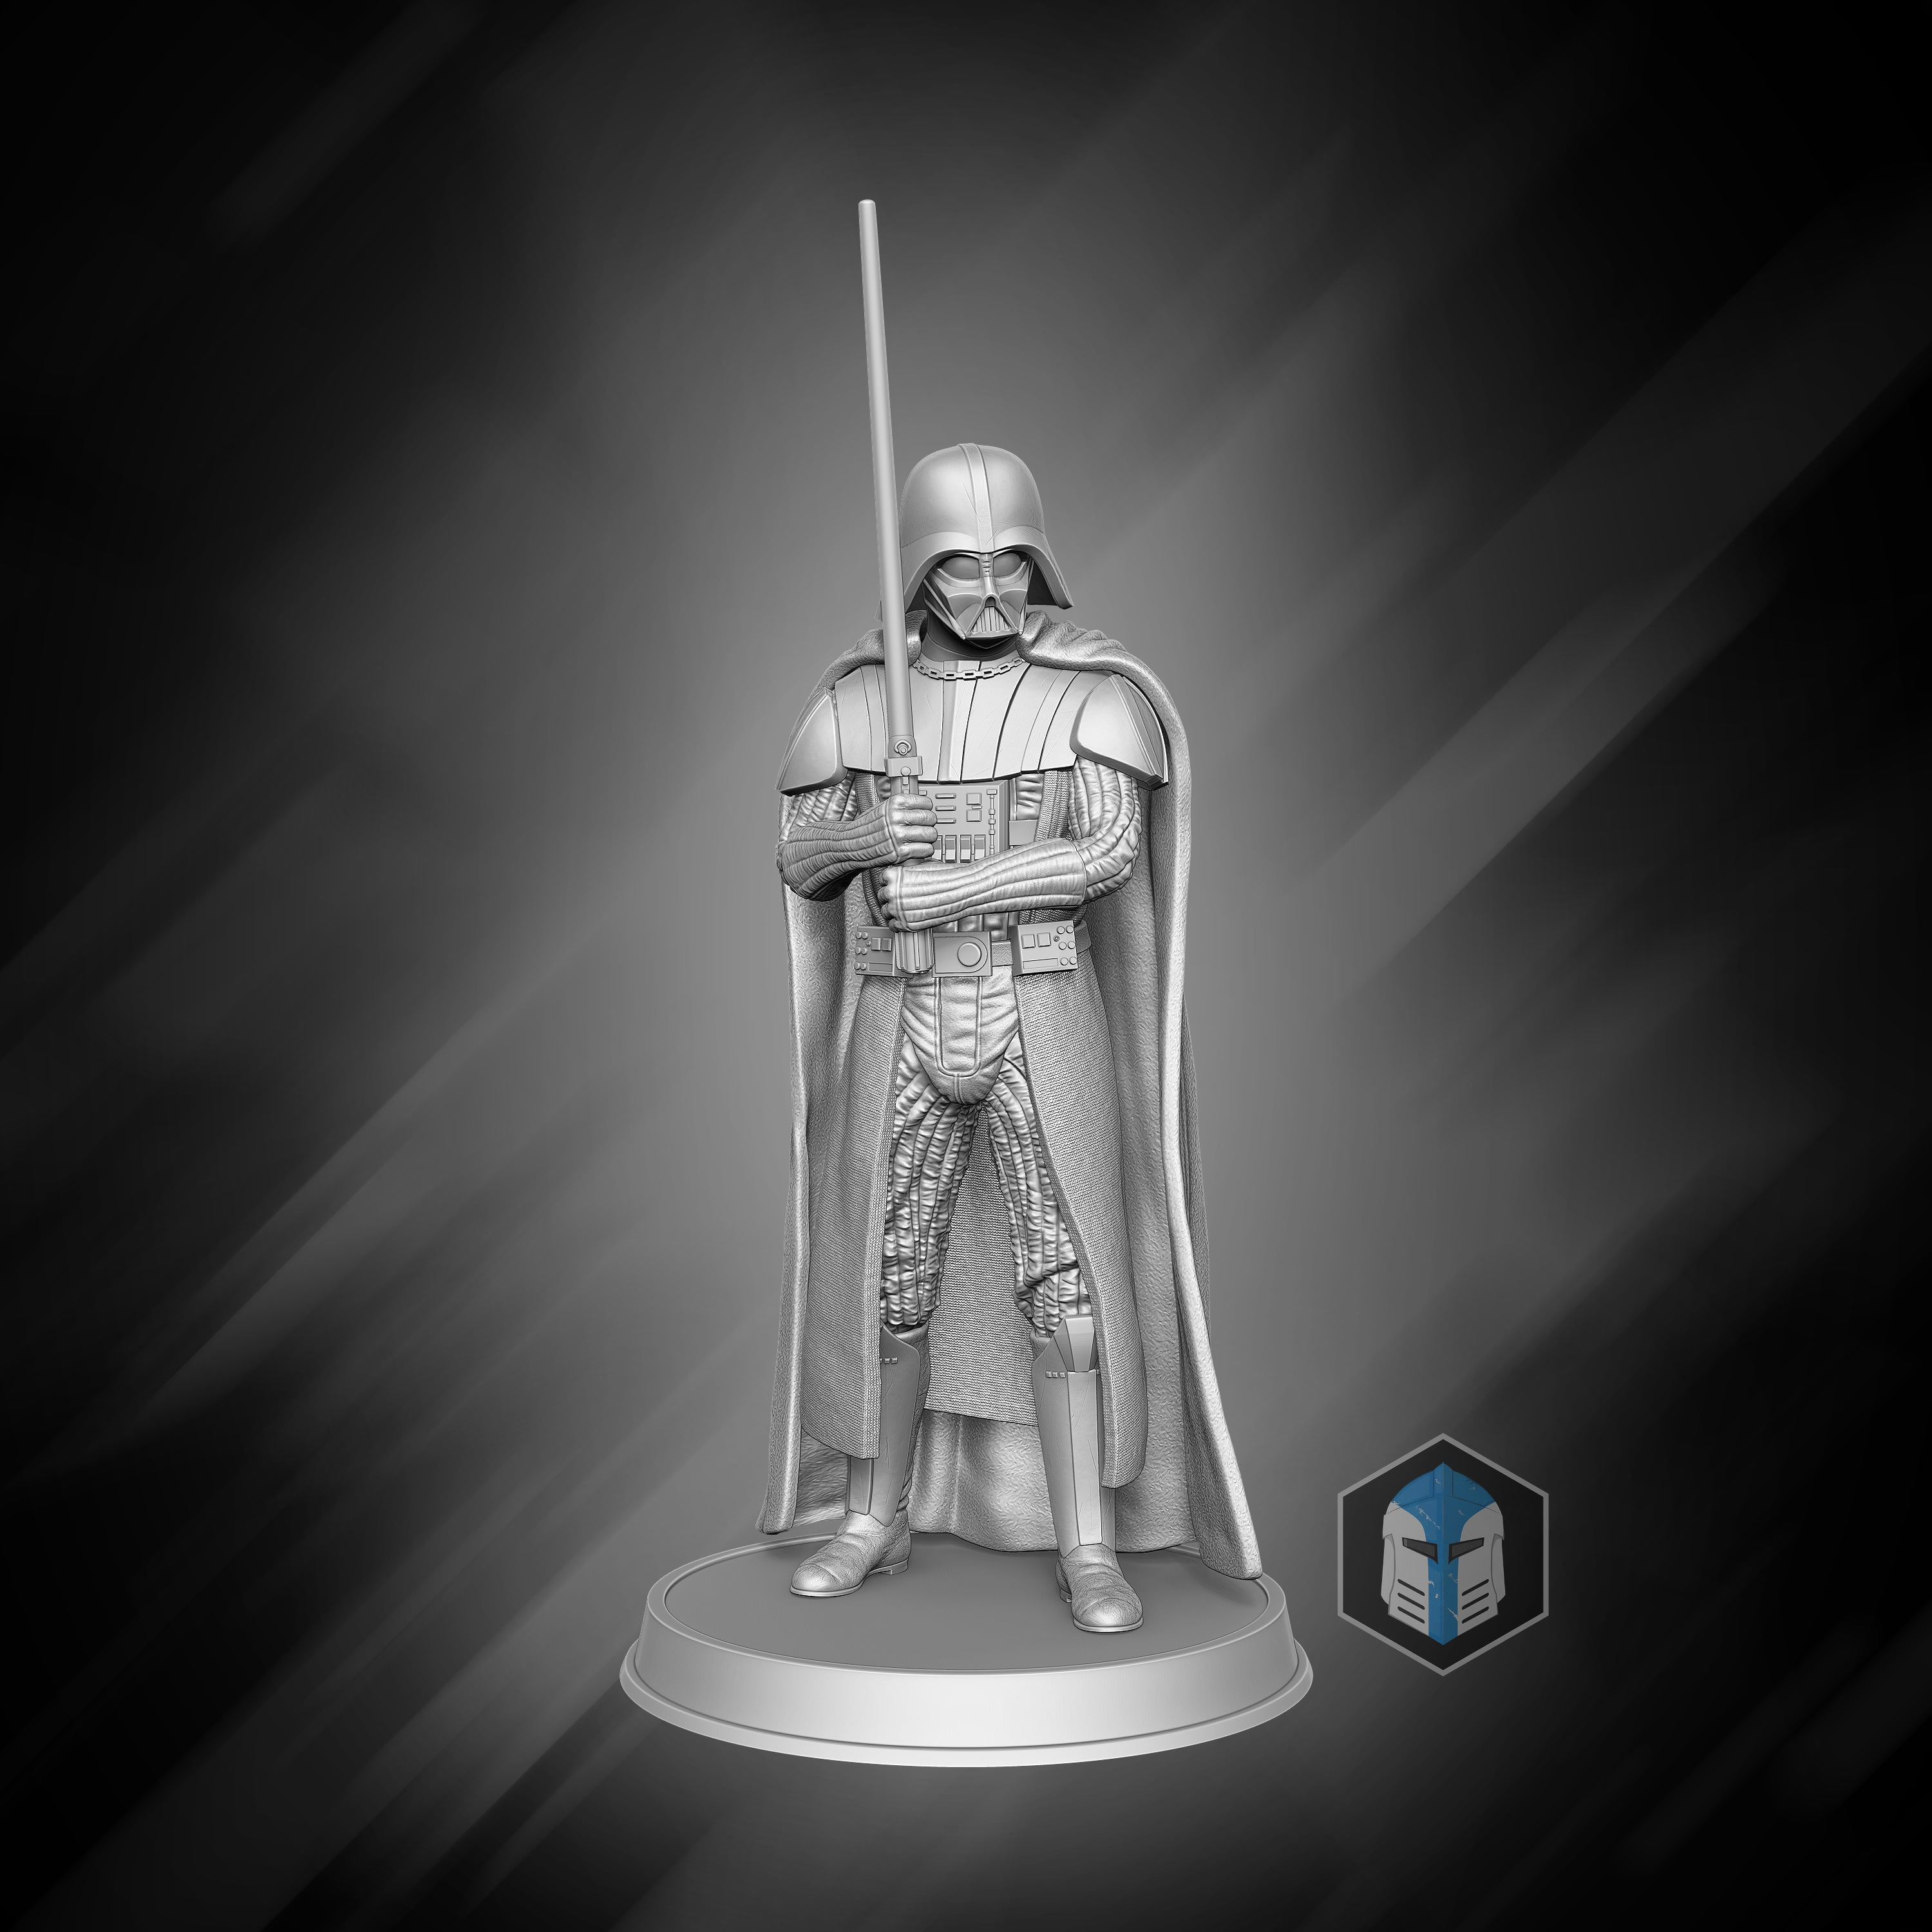 Darth Vader Figurine - Unforgiving - 3D Print Files - Galactic Armory